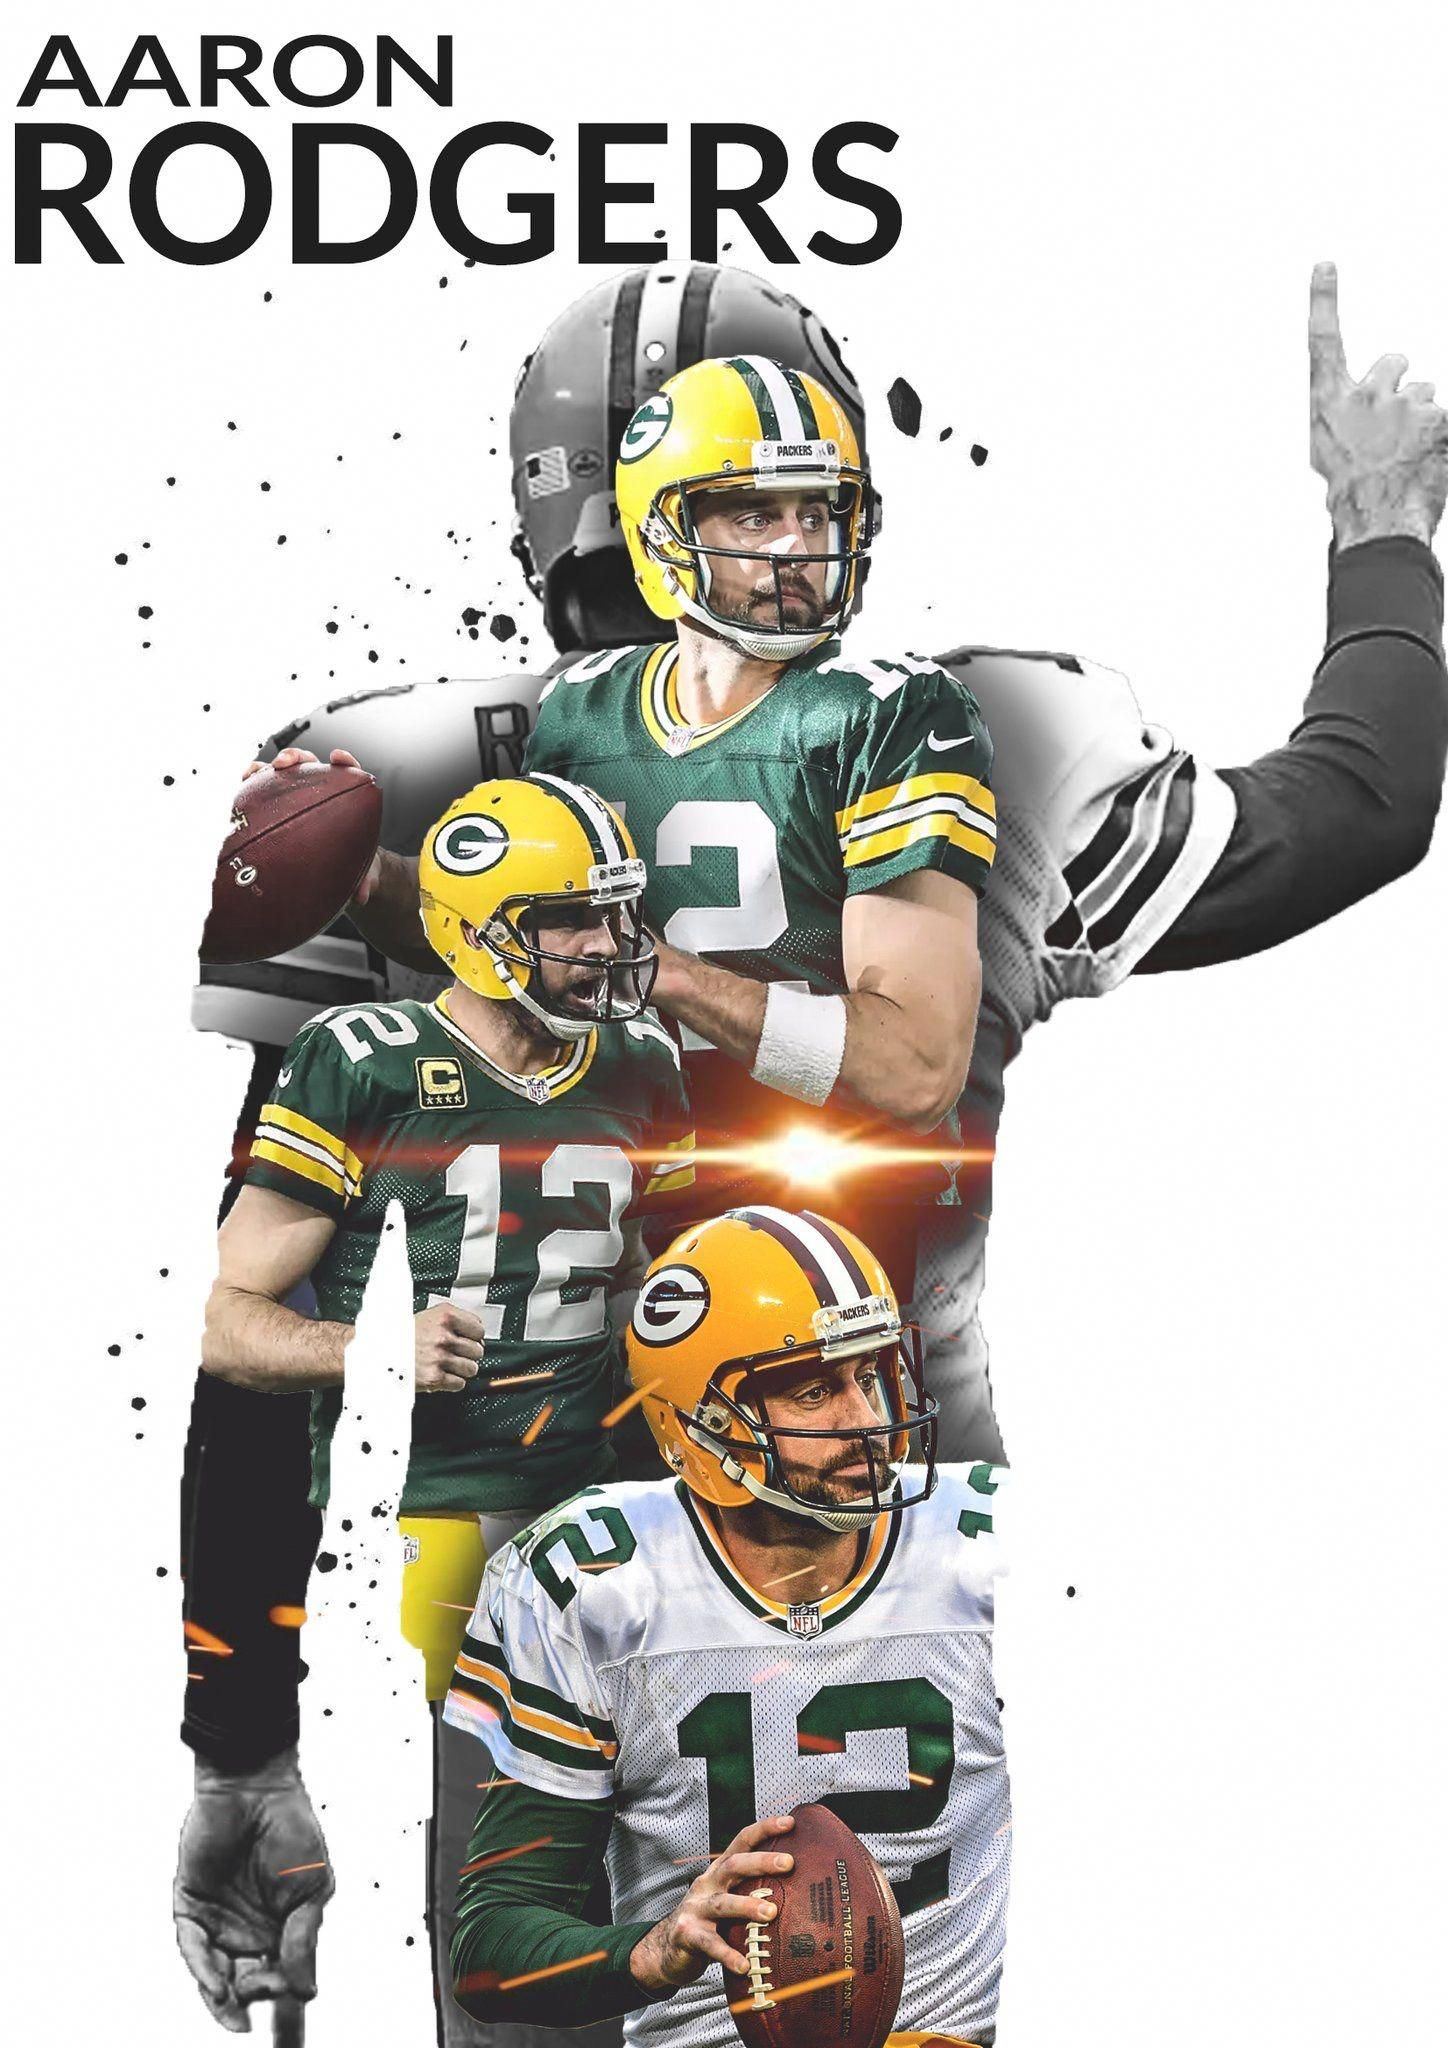 interestingsportsmemes Green bay packers aaron rodgers